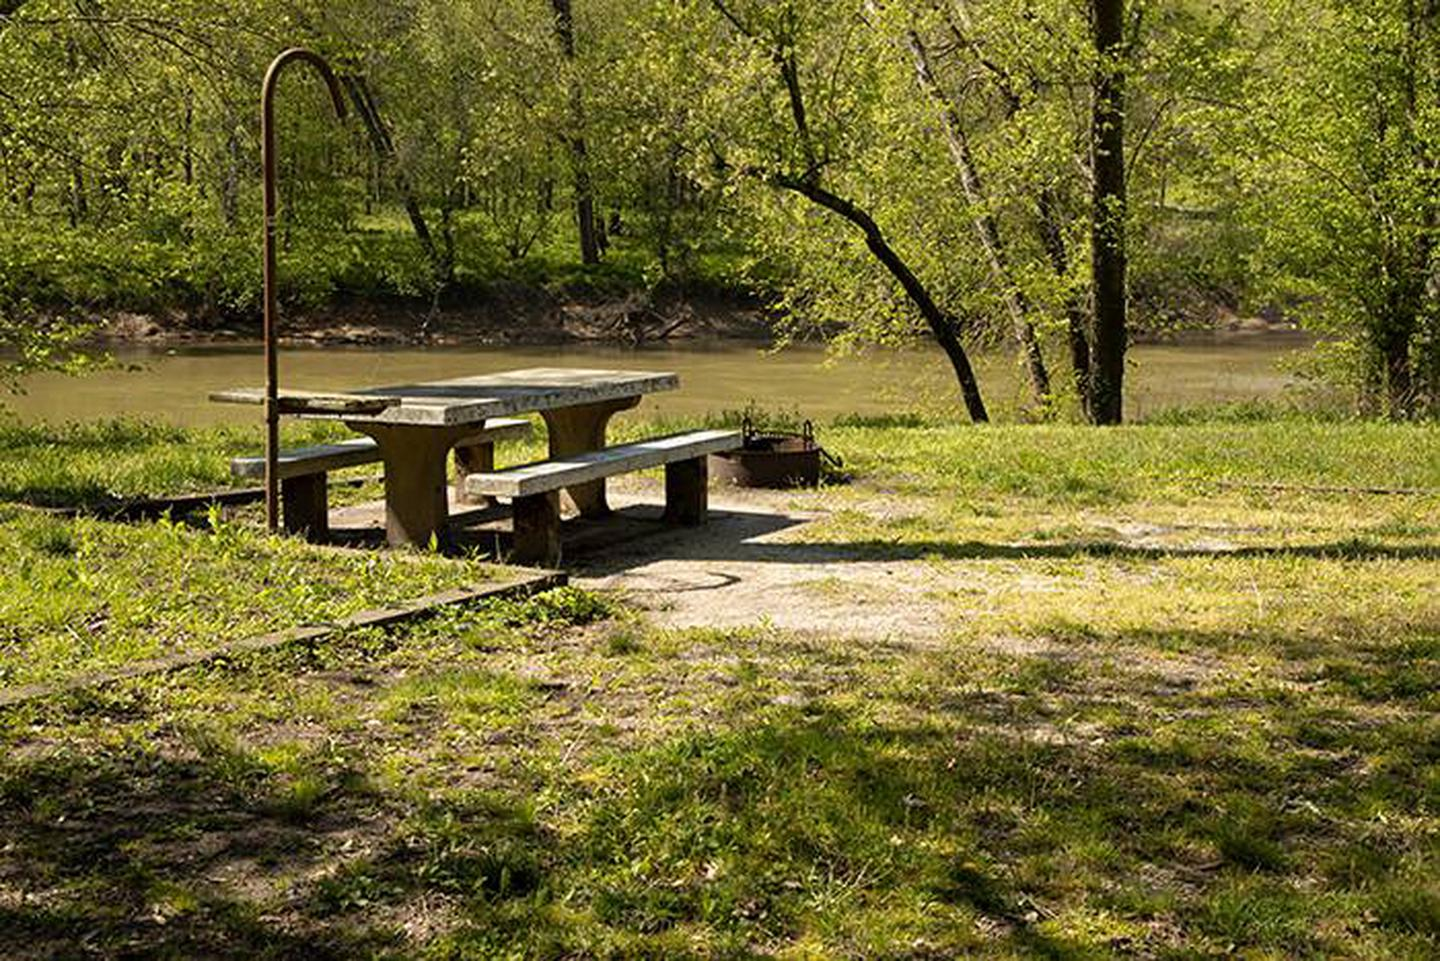 Campsite 5, located along the river bank of the Green River, the campsite has a picnic table and fire ring. Campsite 5, located along the river bank of the Green River, the campsite has a picnic table and fire ring.